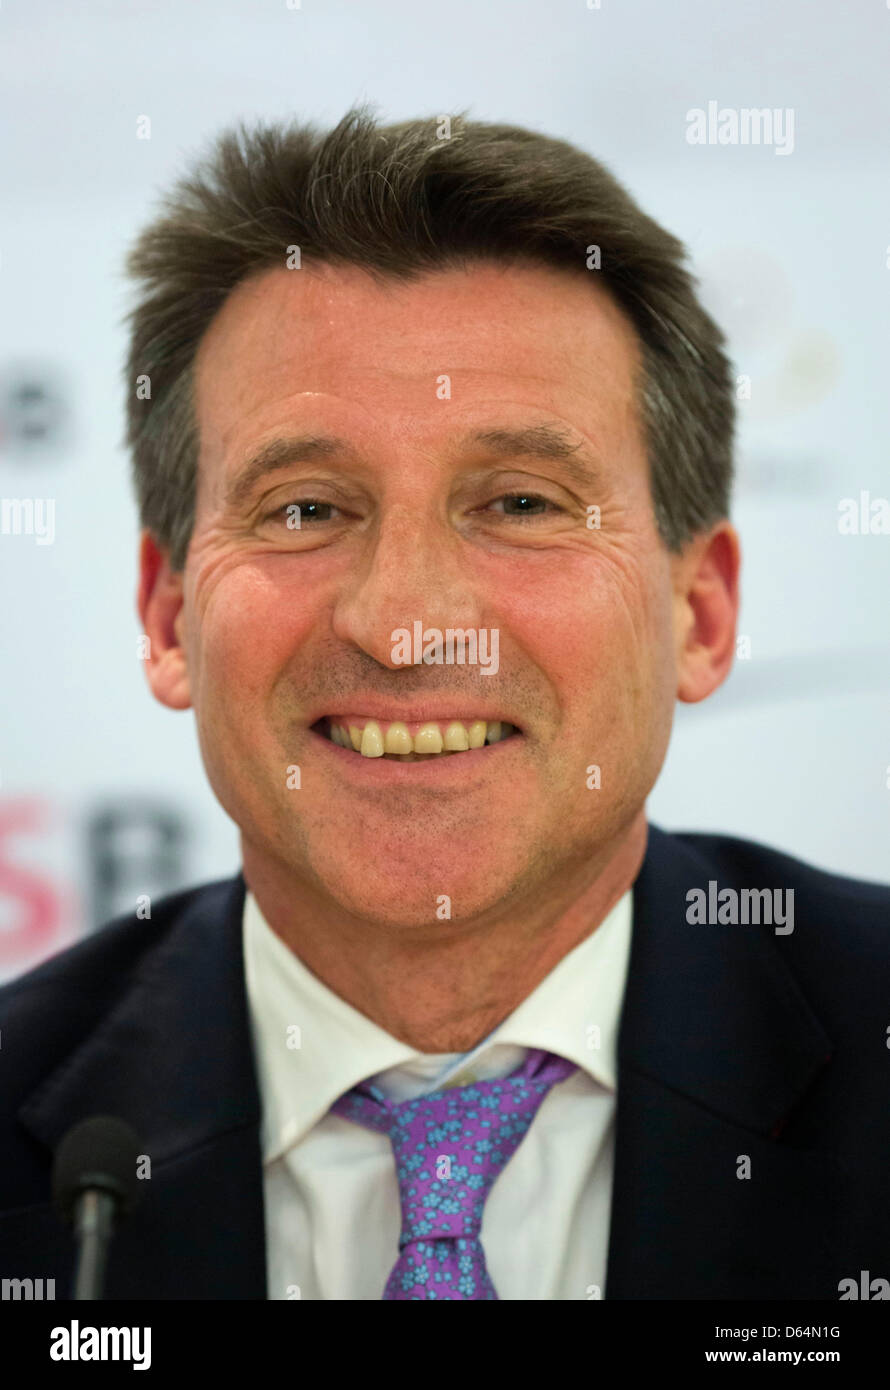 Chairman of the London Organising Committee for the Olympic Games 2012 in London Lord Sebastian Coe smiles at a - Stock Image